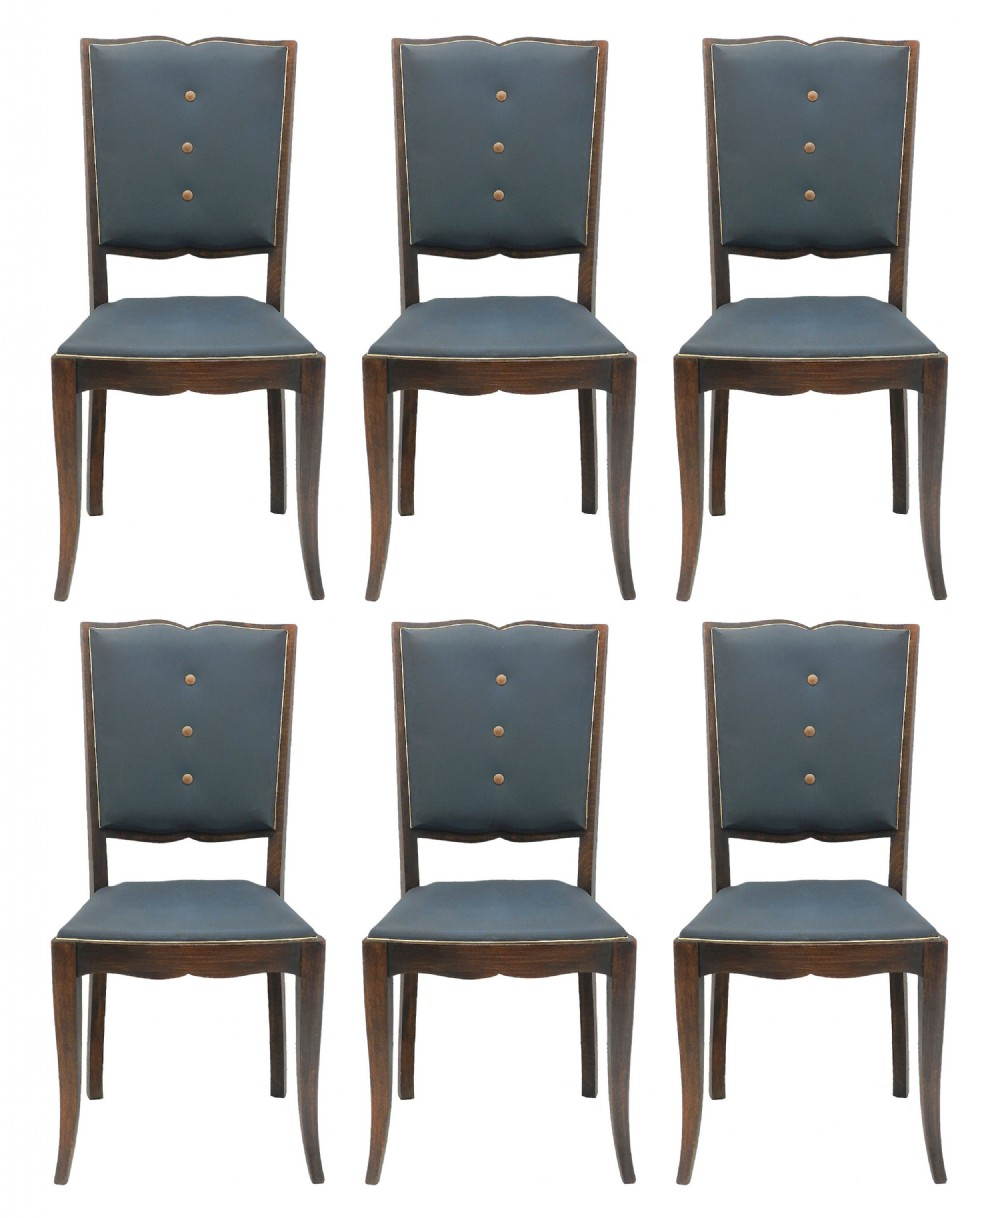 six art deco dining chairs moustache back to restore recover french c1930